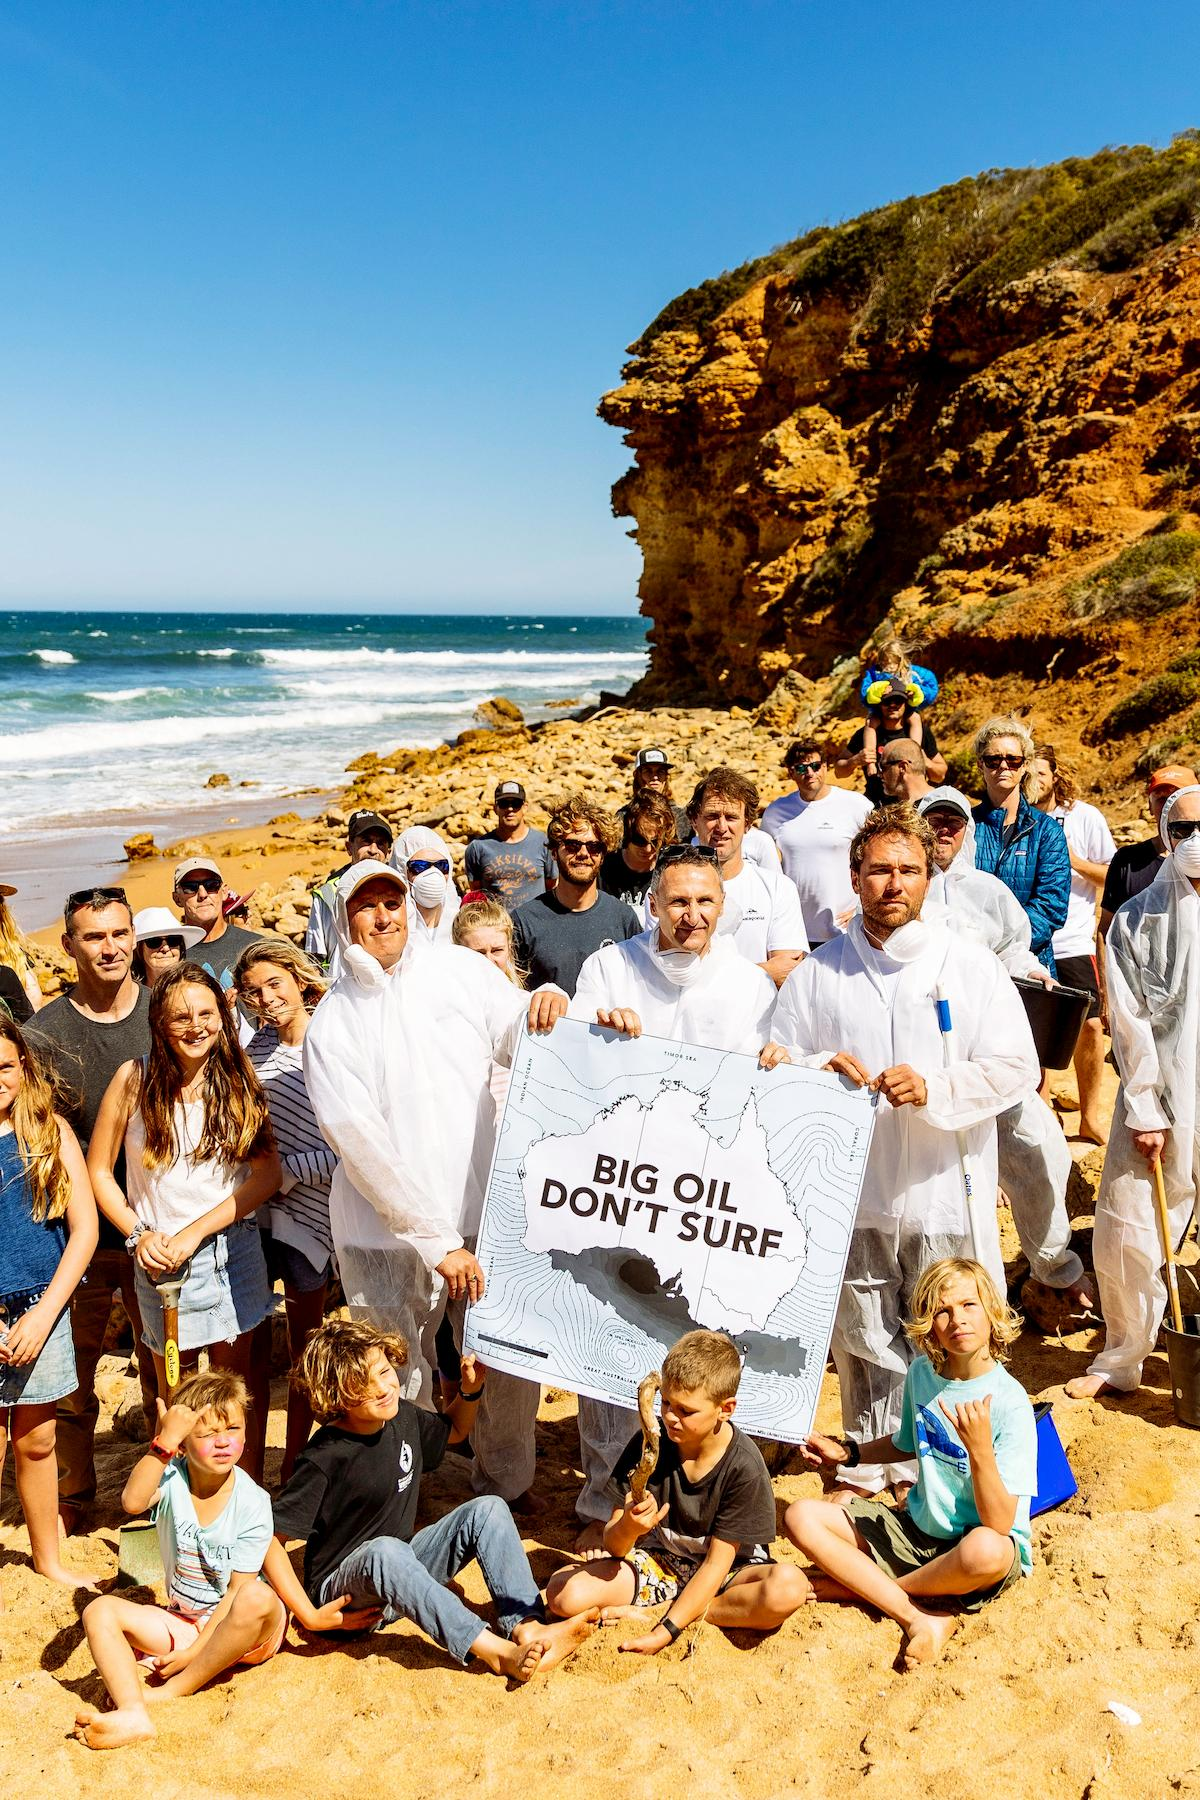 Big Oil Don't Surf protest at Bells Beach, 2018